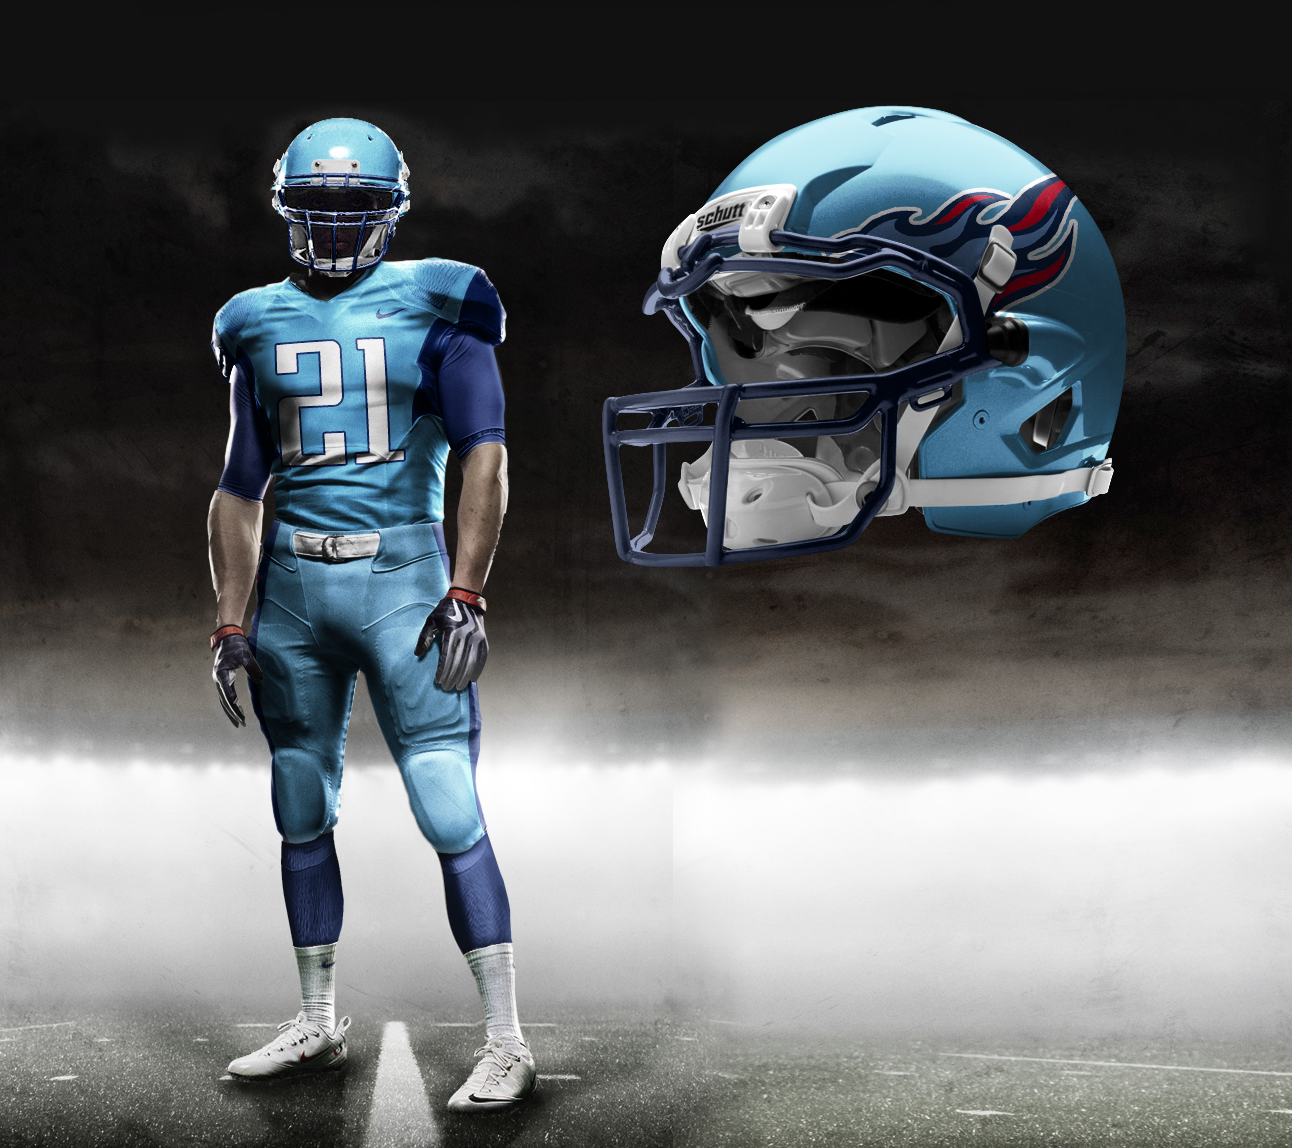 Fragante Mendigar Ejercicio  Nike Pro Combat NFL Uniforms: Check Out Fake Unis That Tricked Fans |  Bleacher Report | Latest News, Videos and Highlights